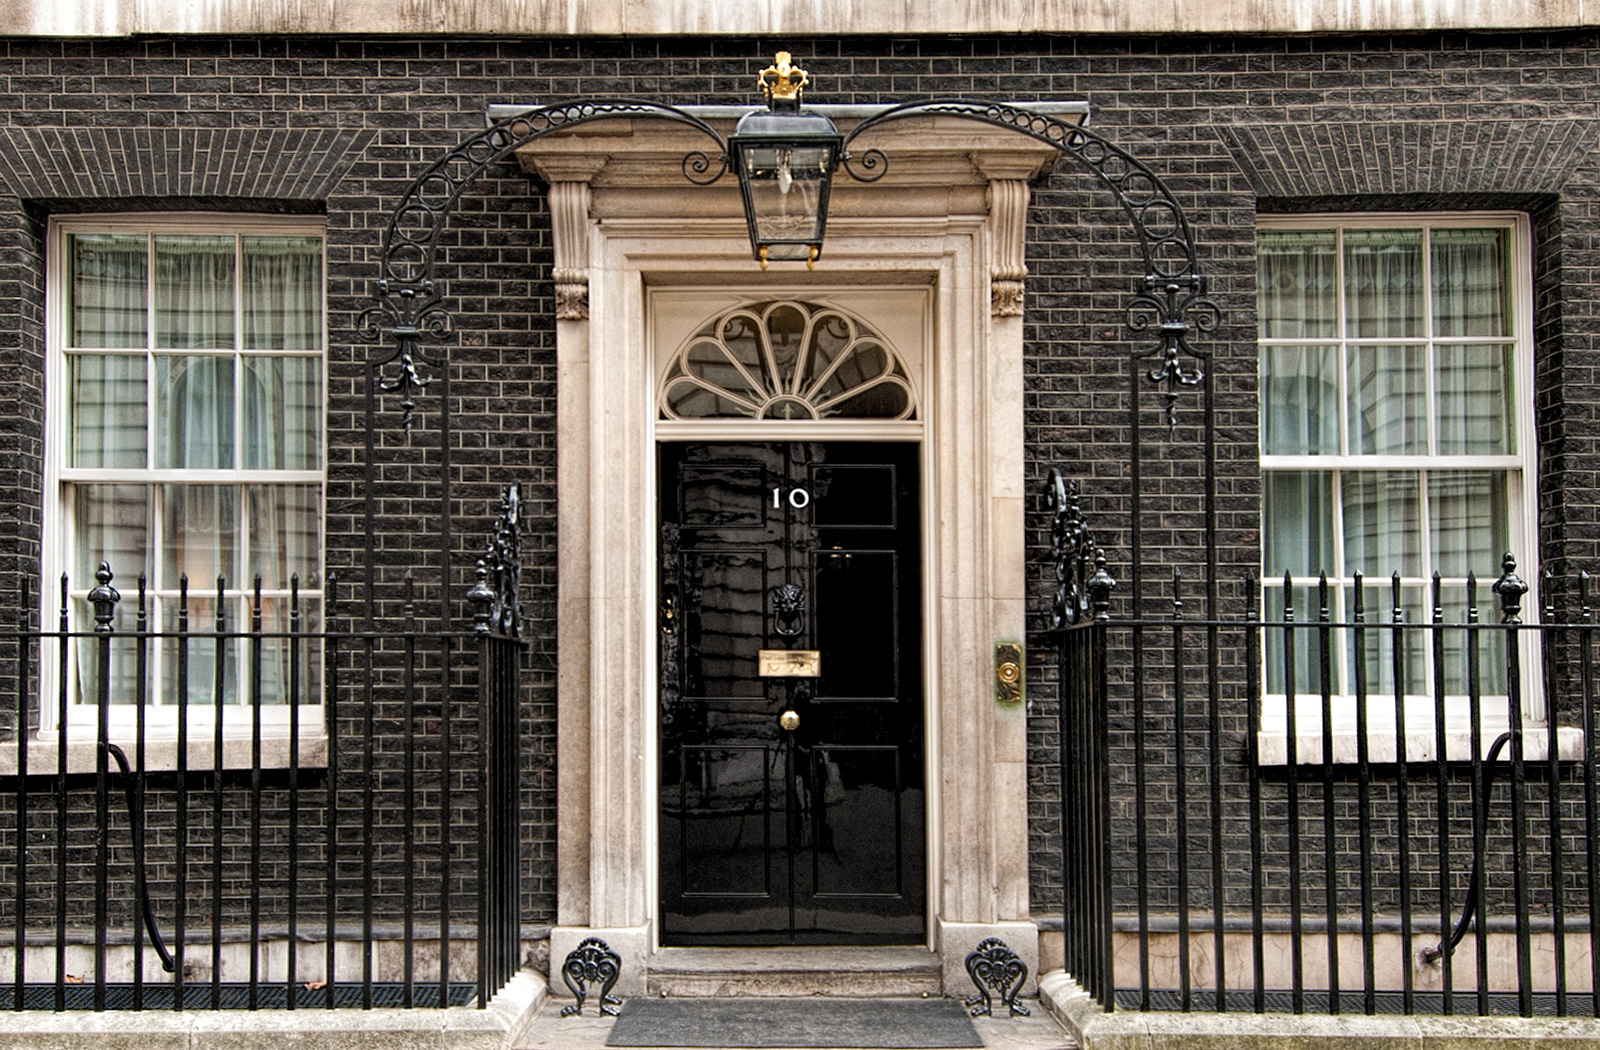 10 Downing Street Virtual Tour Eyerevolution